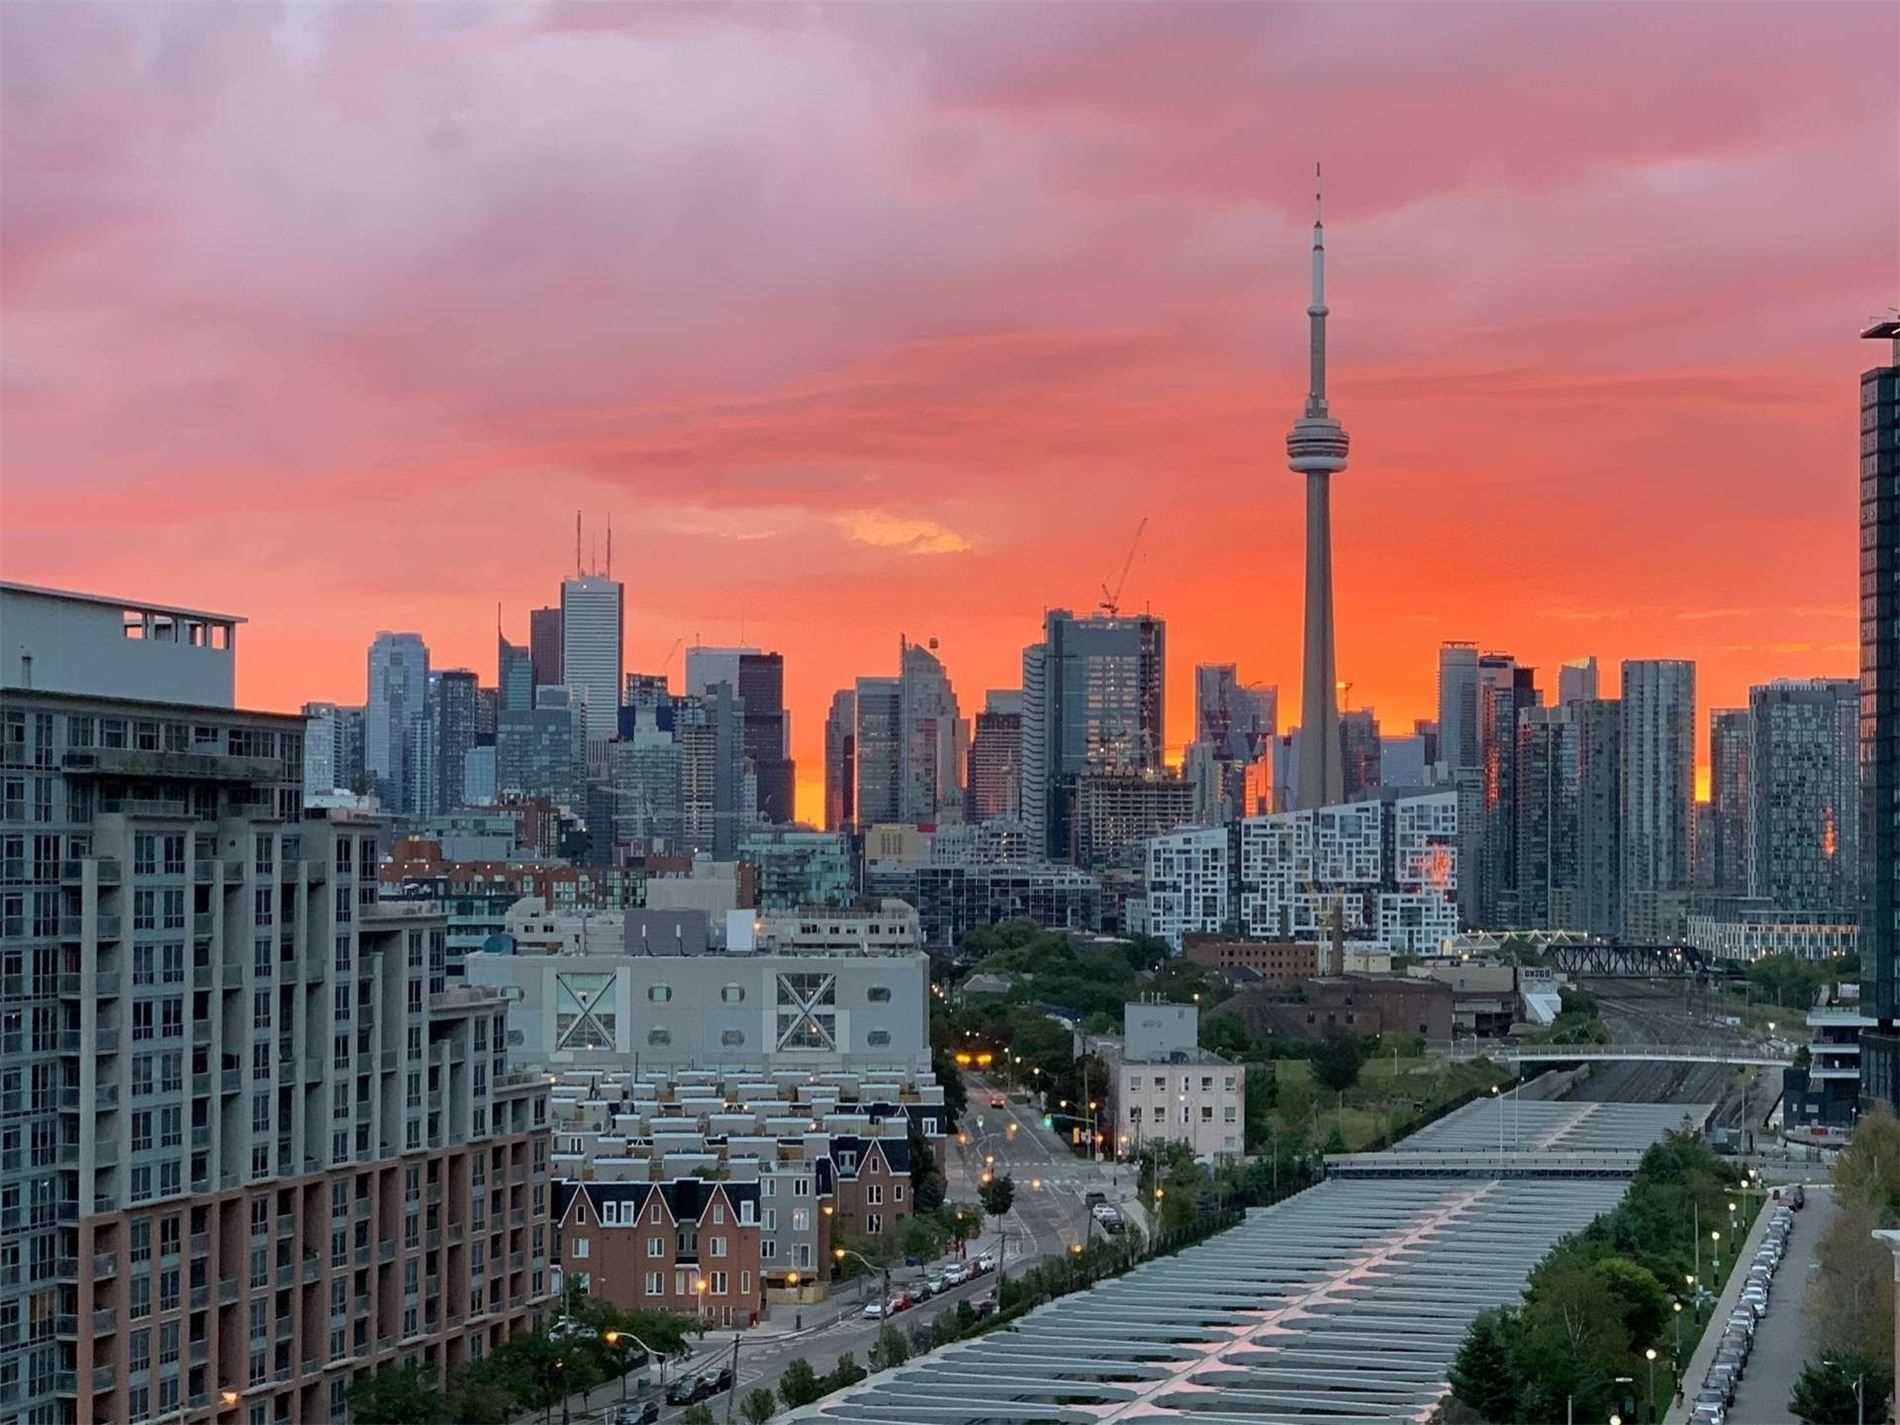 125 Western Battery Rd, unit #1302 for sale in Liberty Village - image #1